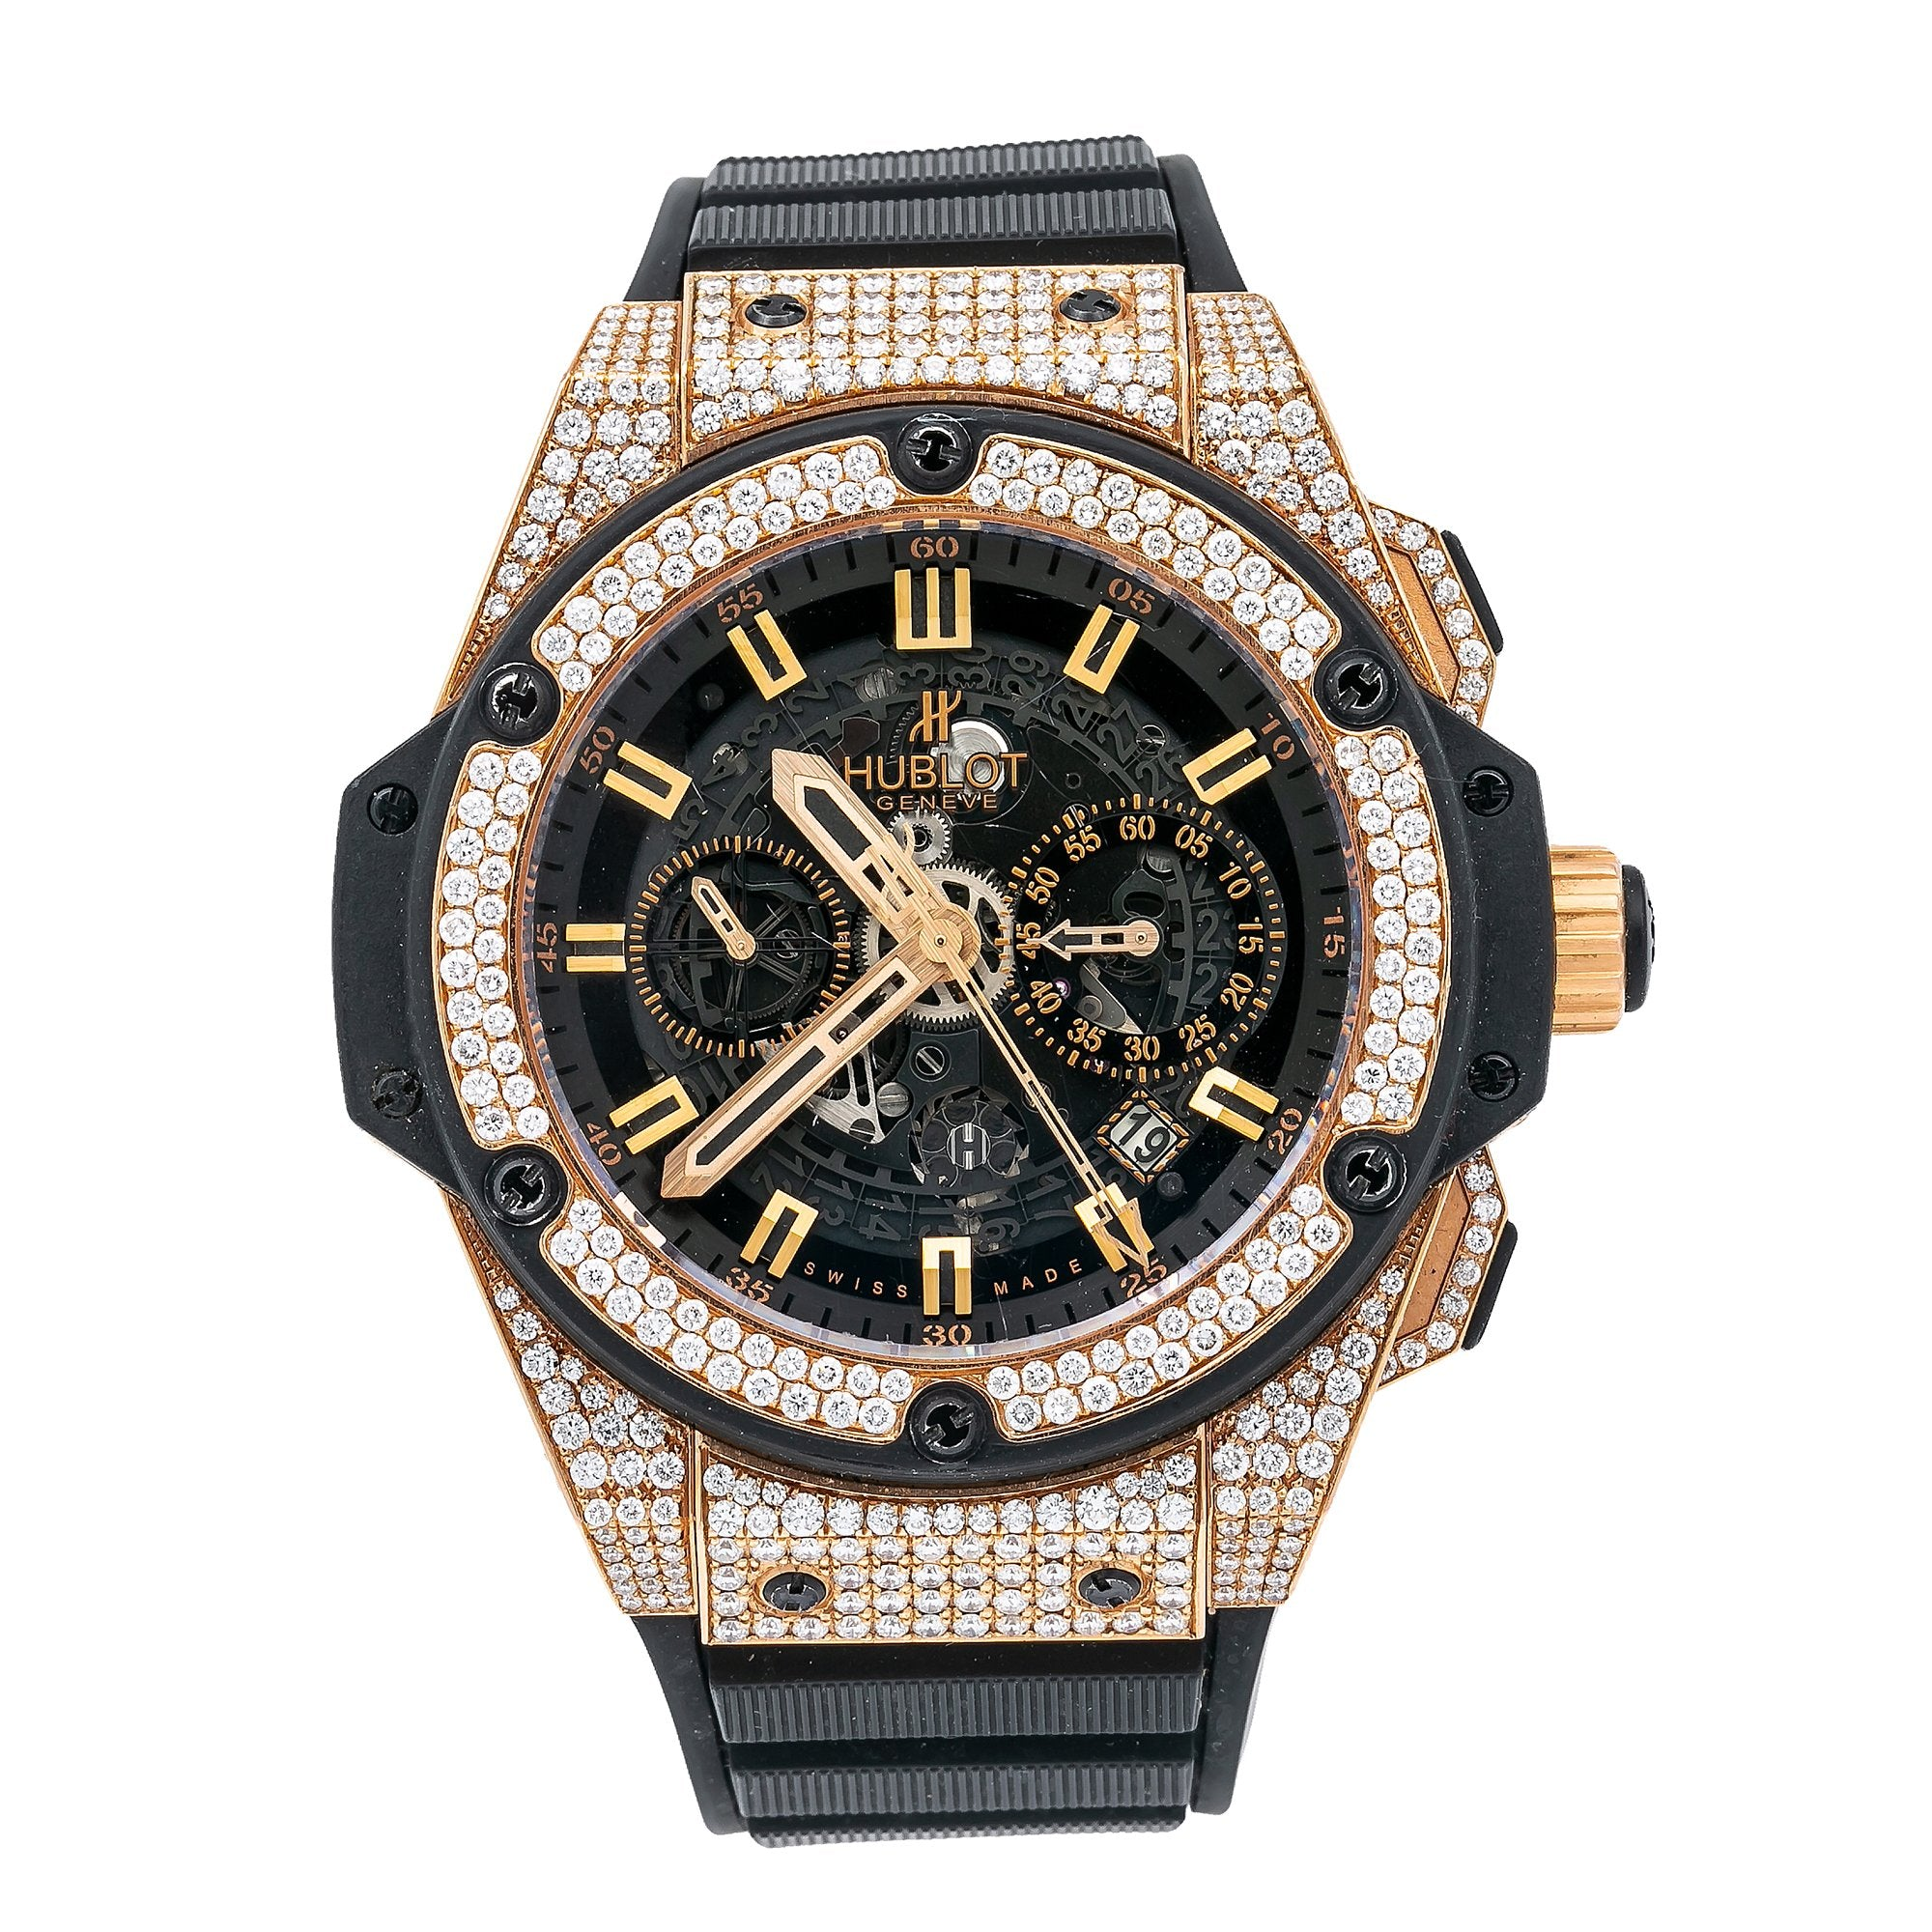 Hublot King Power 701.OX.0180 48MM Black Dial With Rubber Bracelet & 4.50 Ct Diamonds